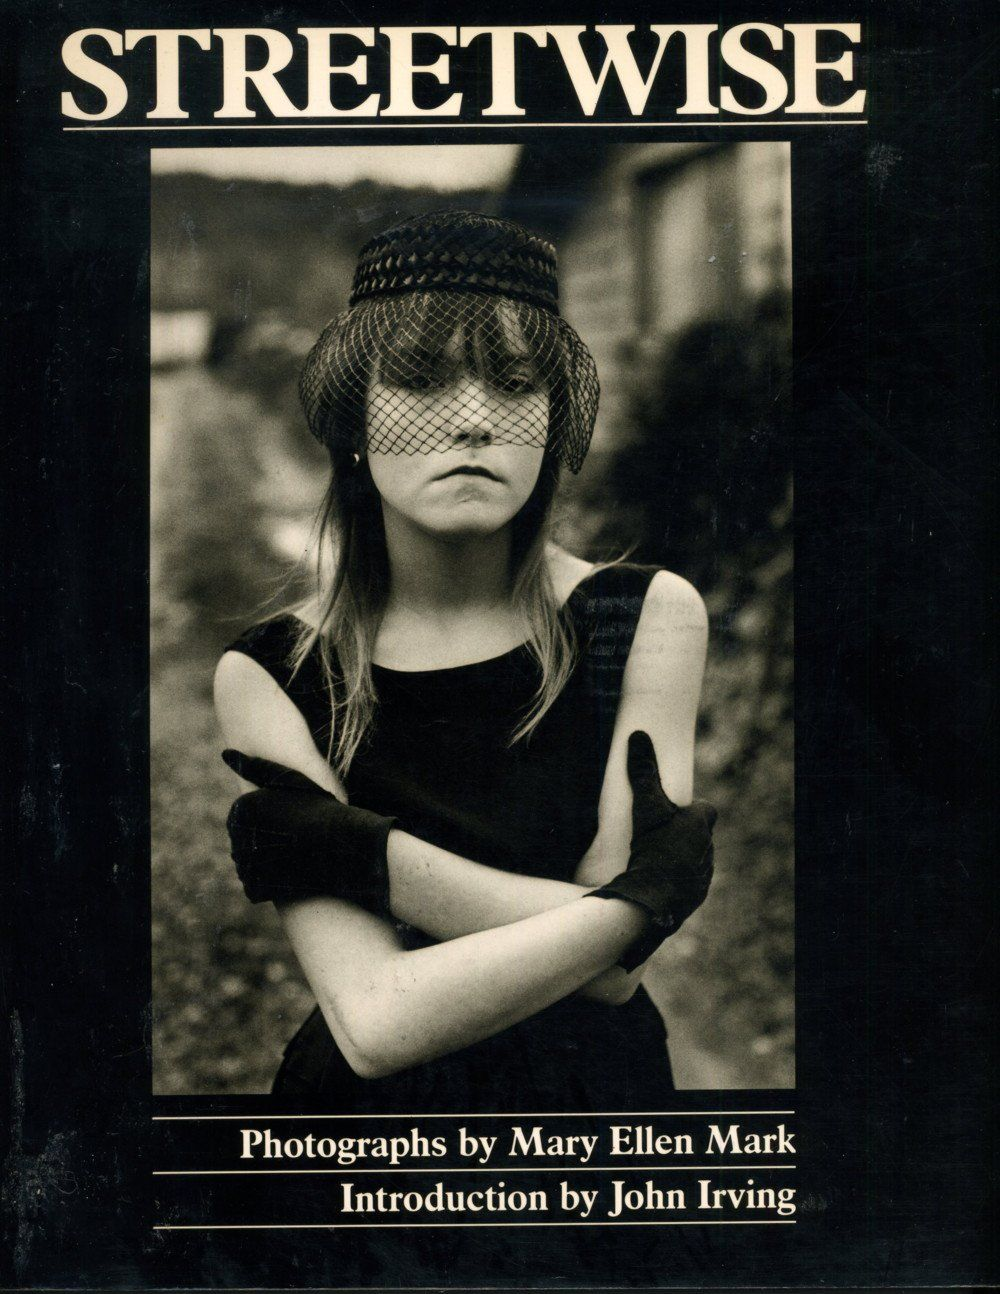 Mary_Ellen_Mark_Streetwise_1988_cover.jpg (JPEG Image, 1000 × 1294 pixels) - Scaled (70%)